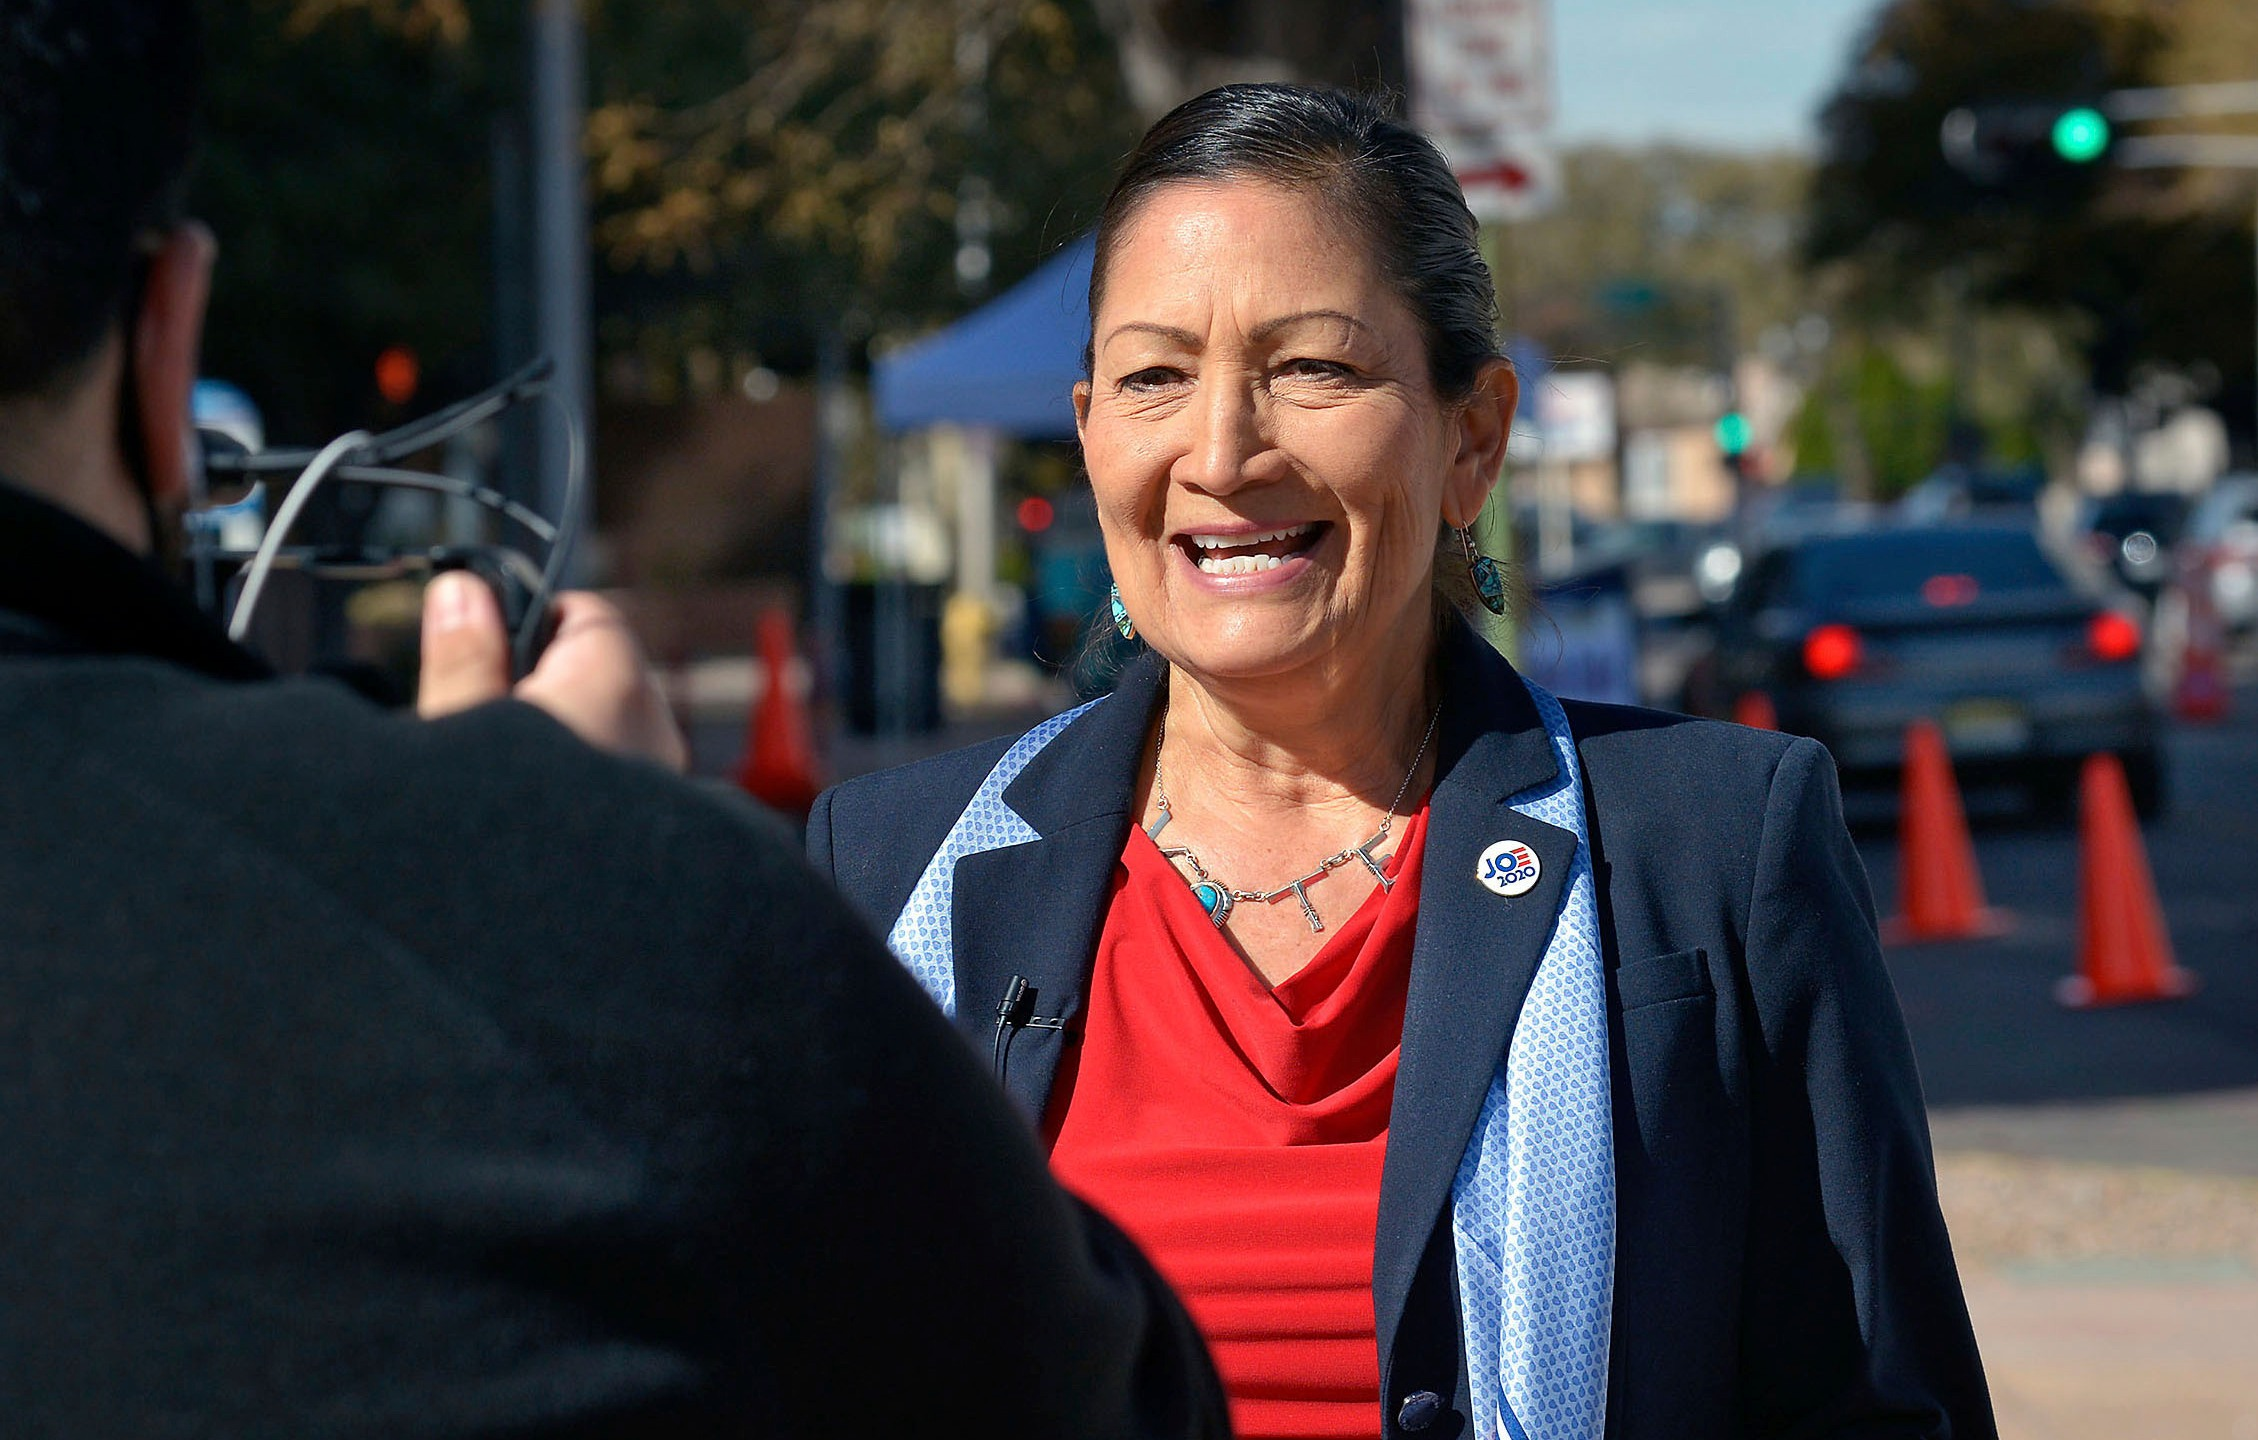 In this Nov. 3, 2020, file photo, Democratic Congresswoman Deb Haaland, N.M.-1st Dist., does a PSA for her Twitter account in downtown Albuquerque, N.M. (Jim Thompson/The Albuquerque Journal via AP, File)